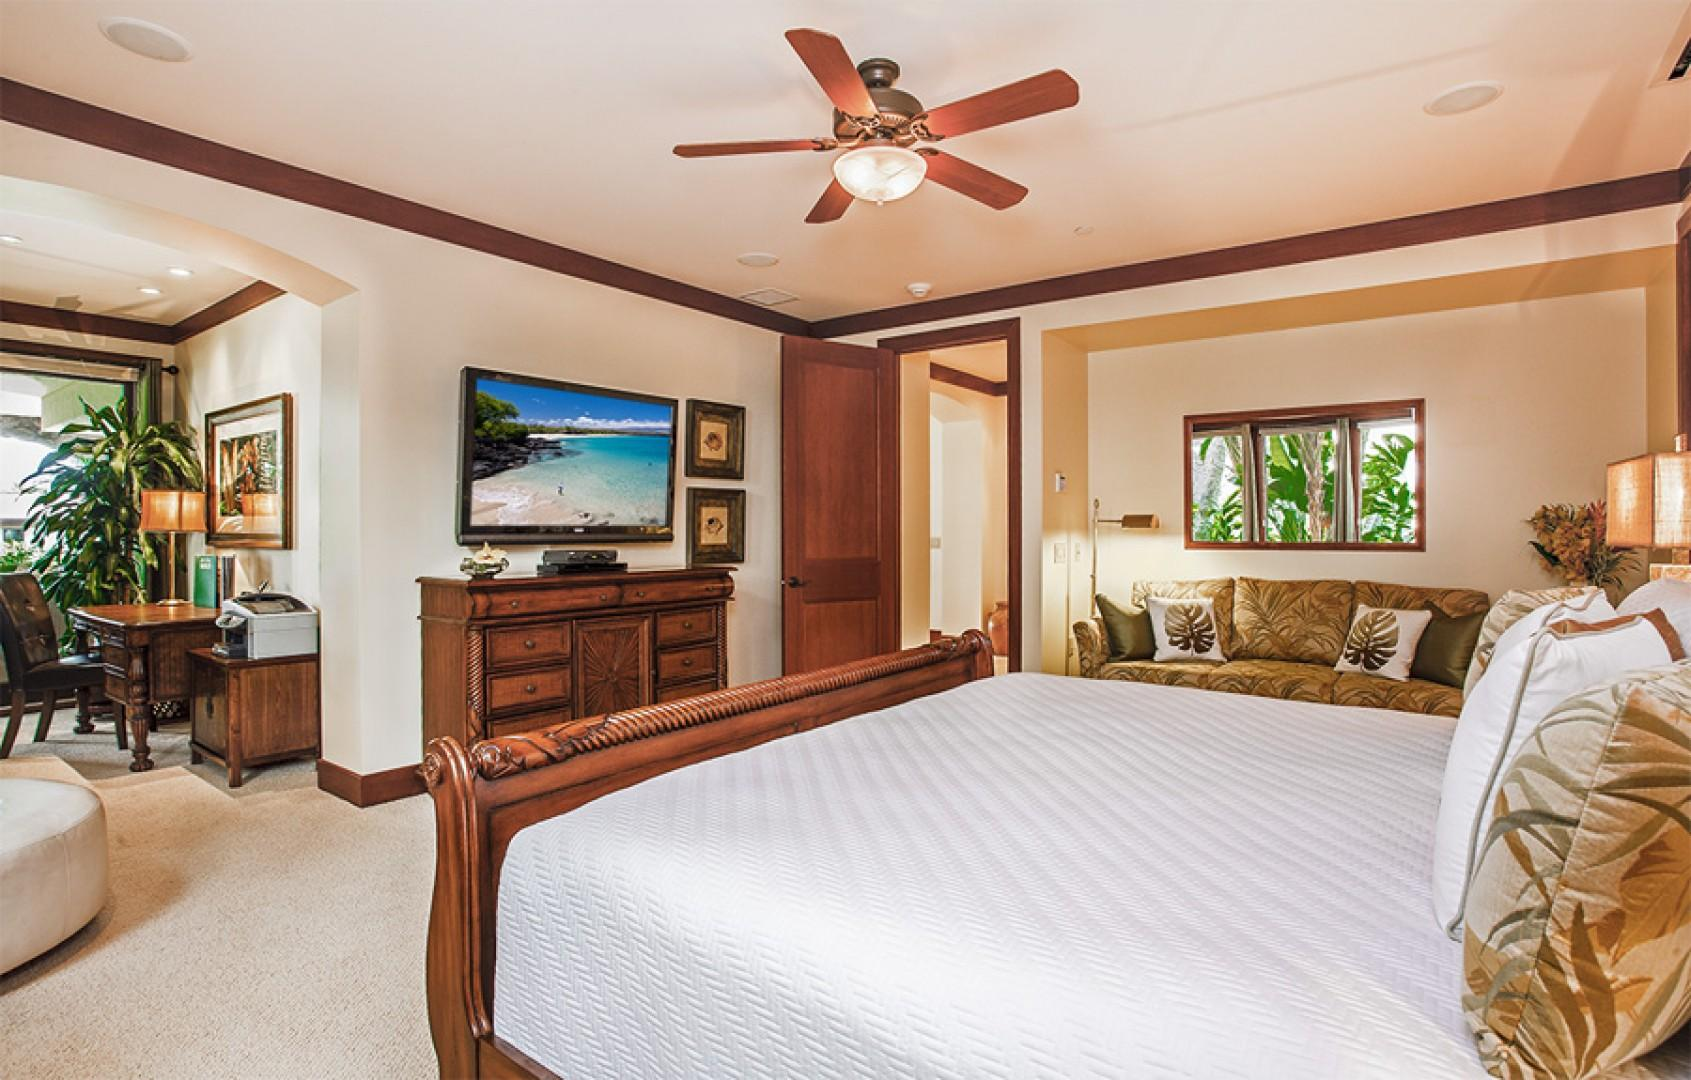 Alternate view of second master bedroom, with king bed.